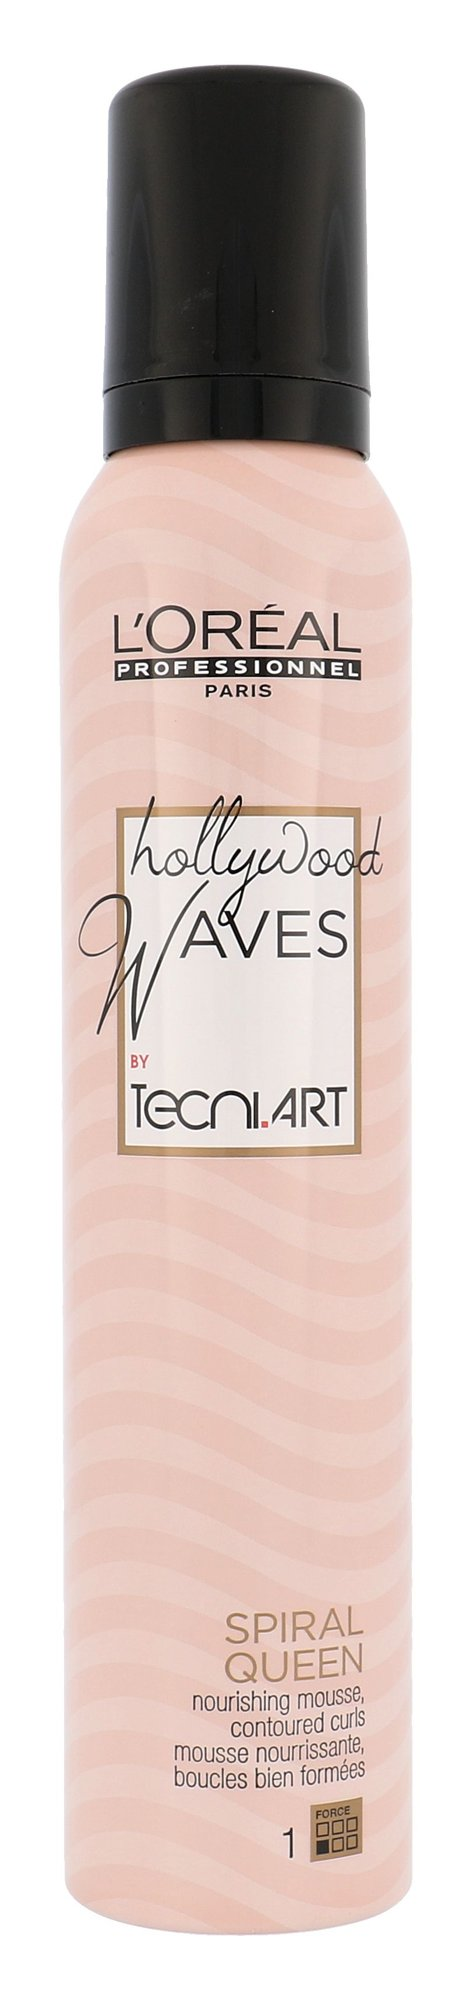 L´Oreal Paris Tecni Art Hollywood Waves Spiral Queen Cosmetic 200ml